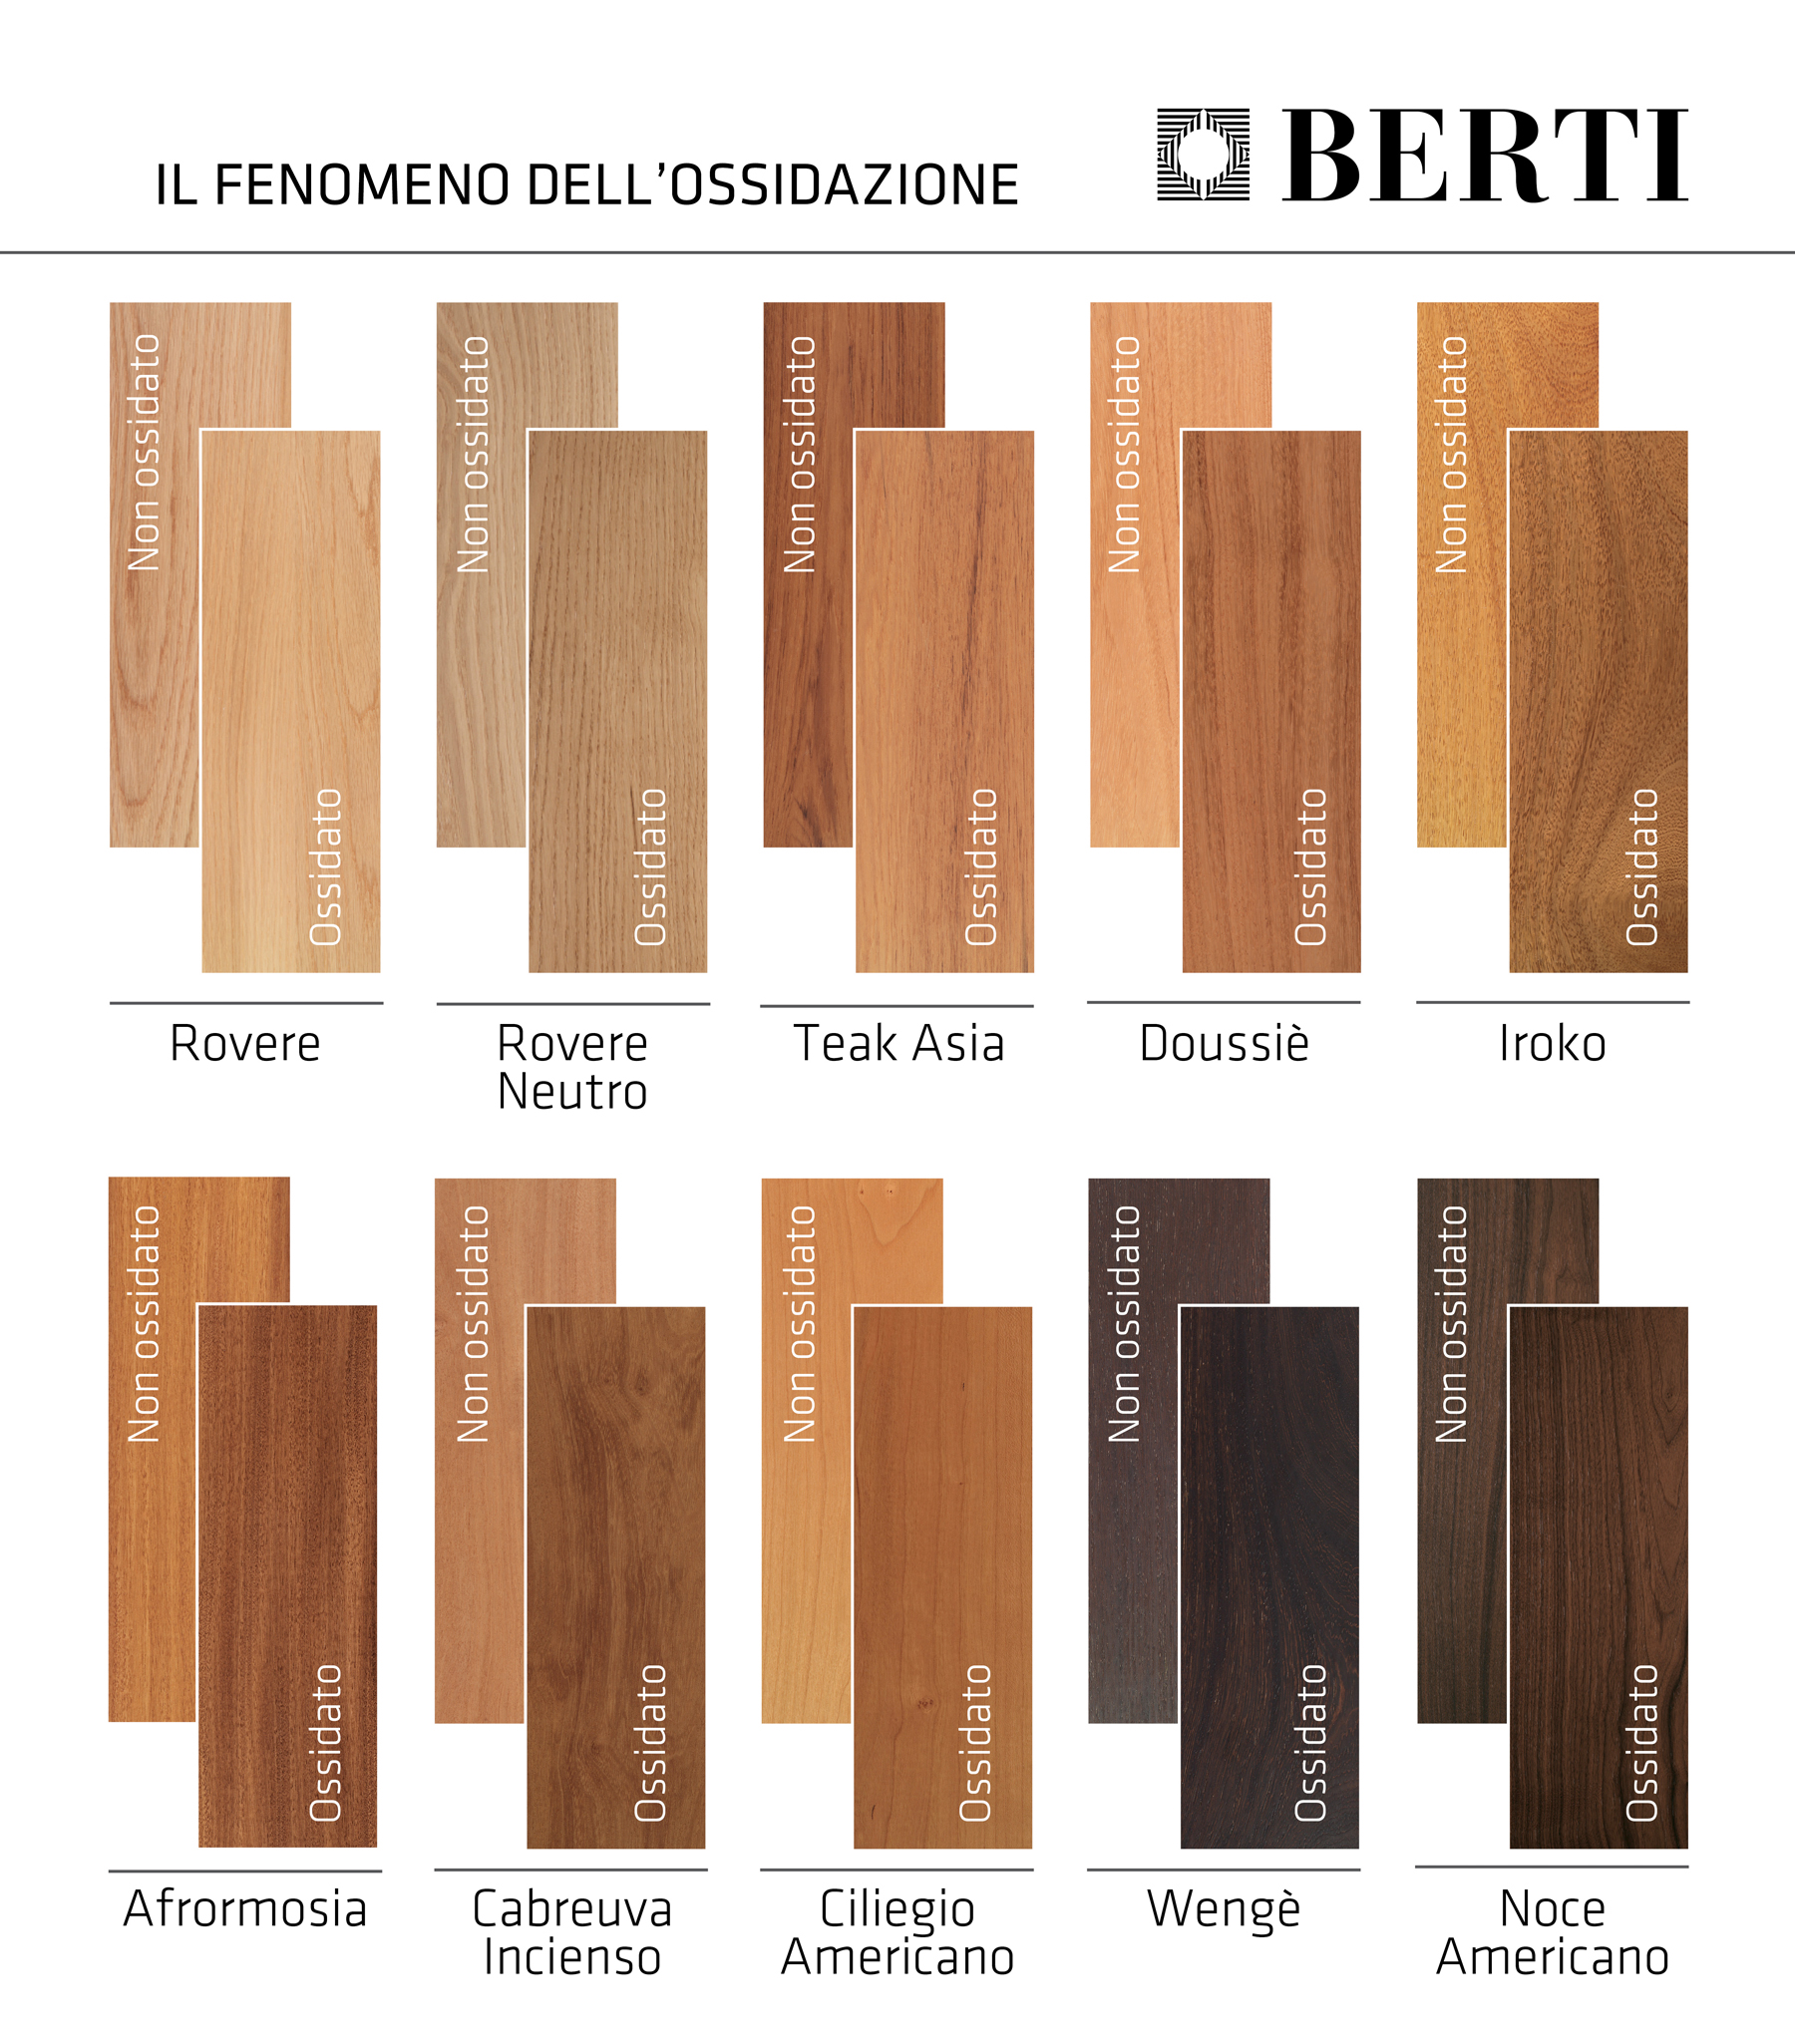 berti consiglia l ossidazione del parquet cos e come mi comporto berti pavimenti in legno. Black Bedroom Furniture Sets. Home Design Ideas